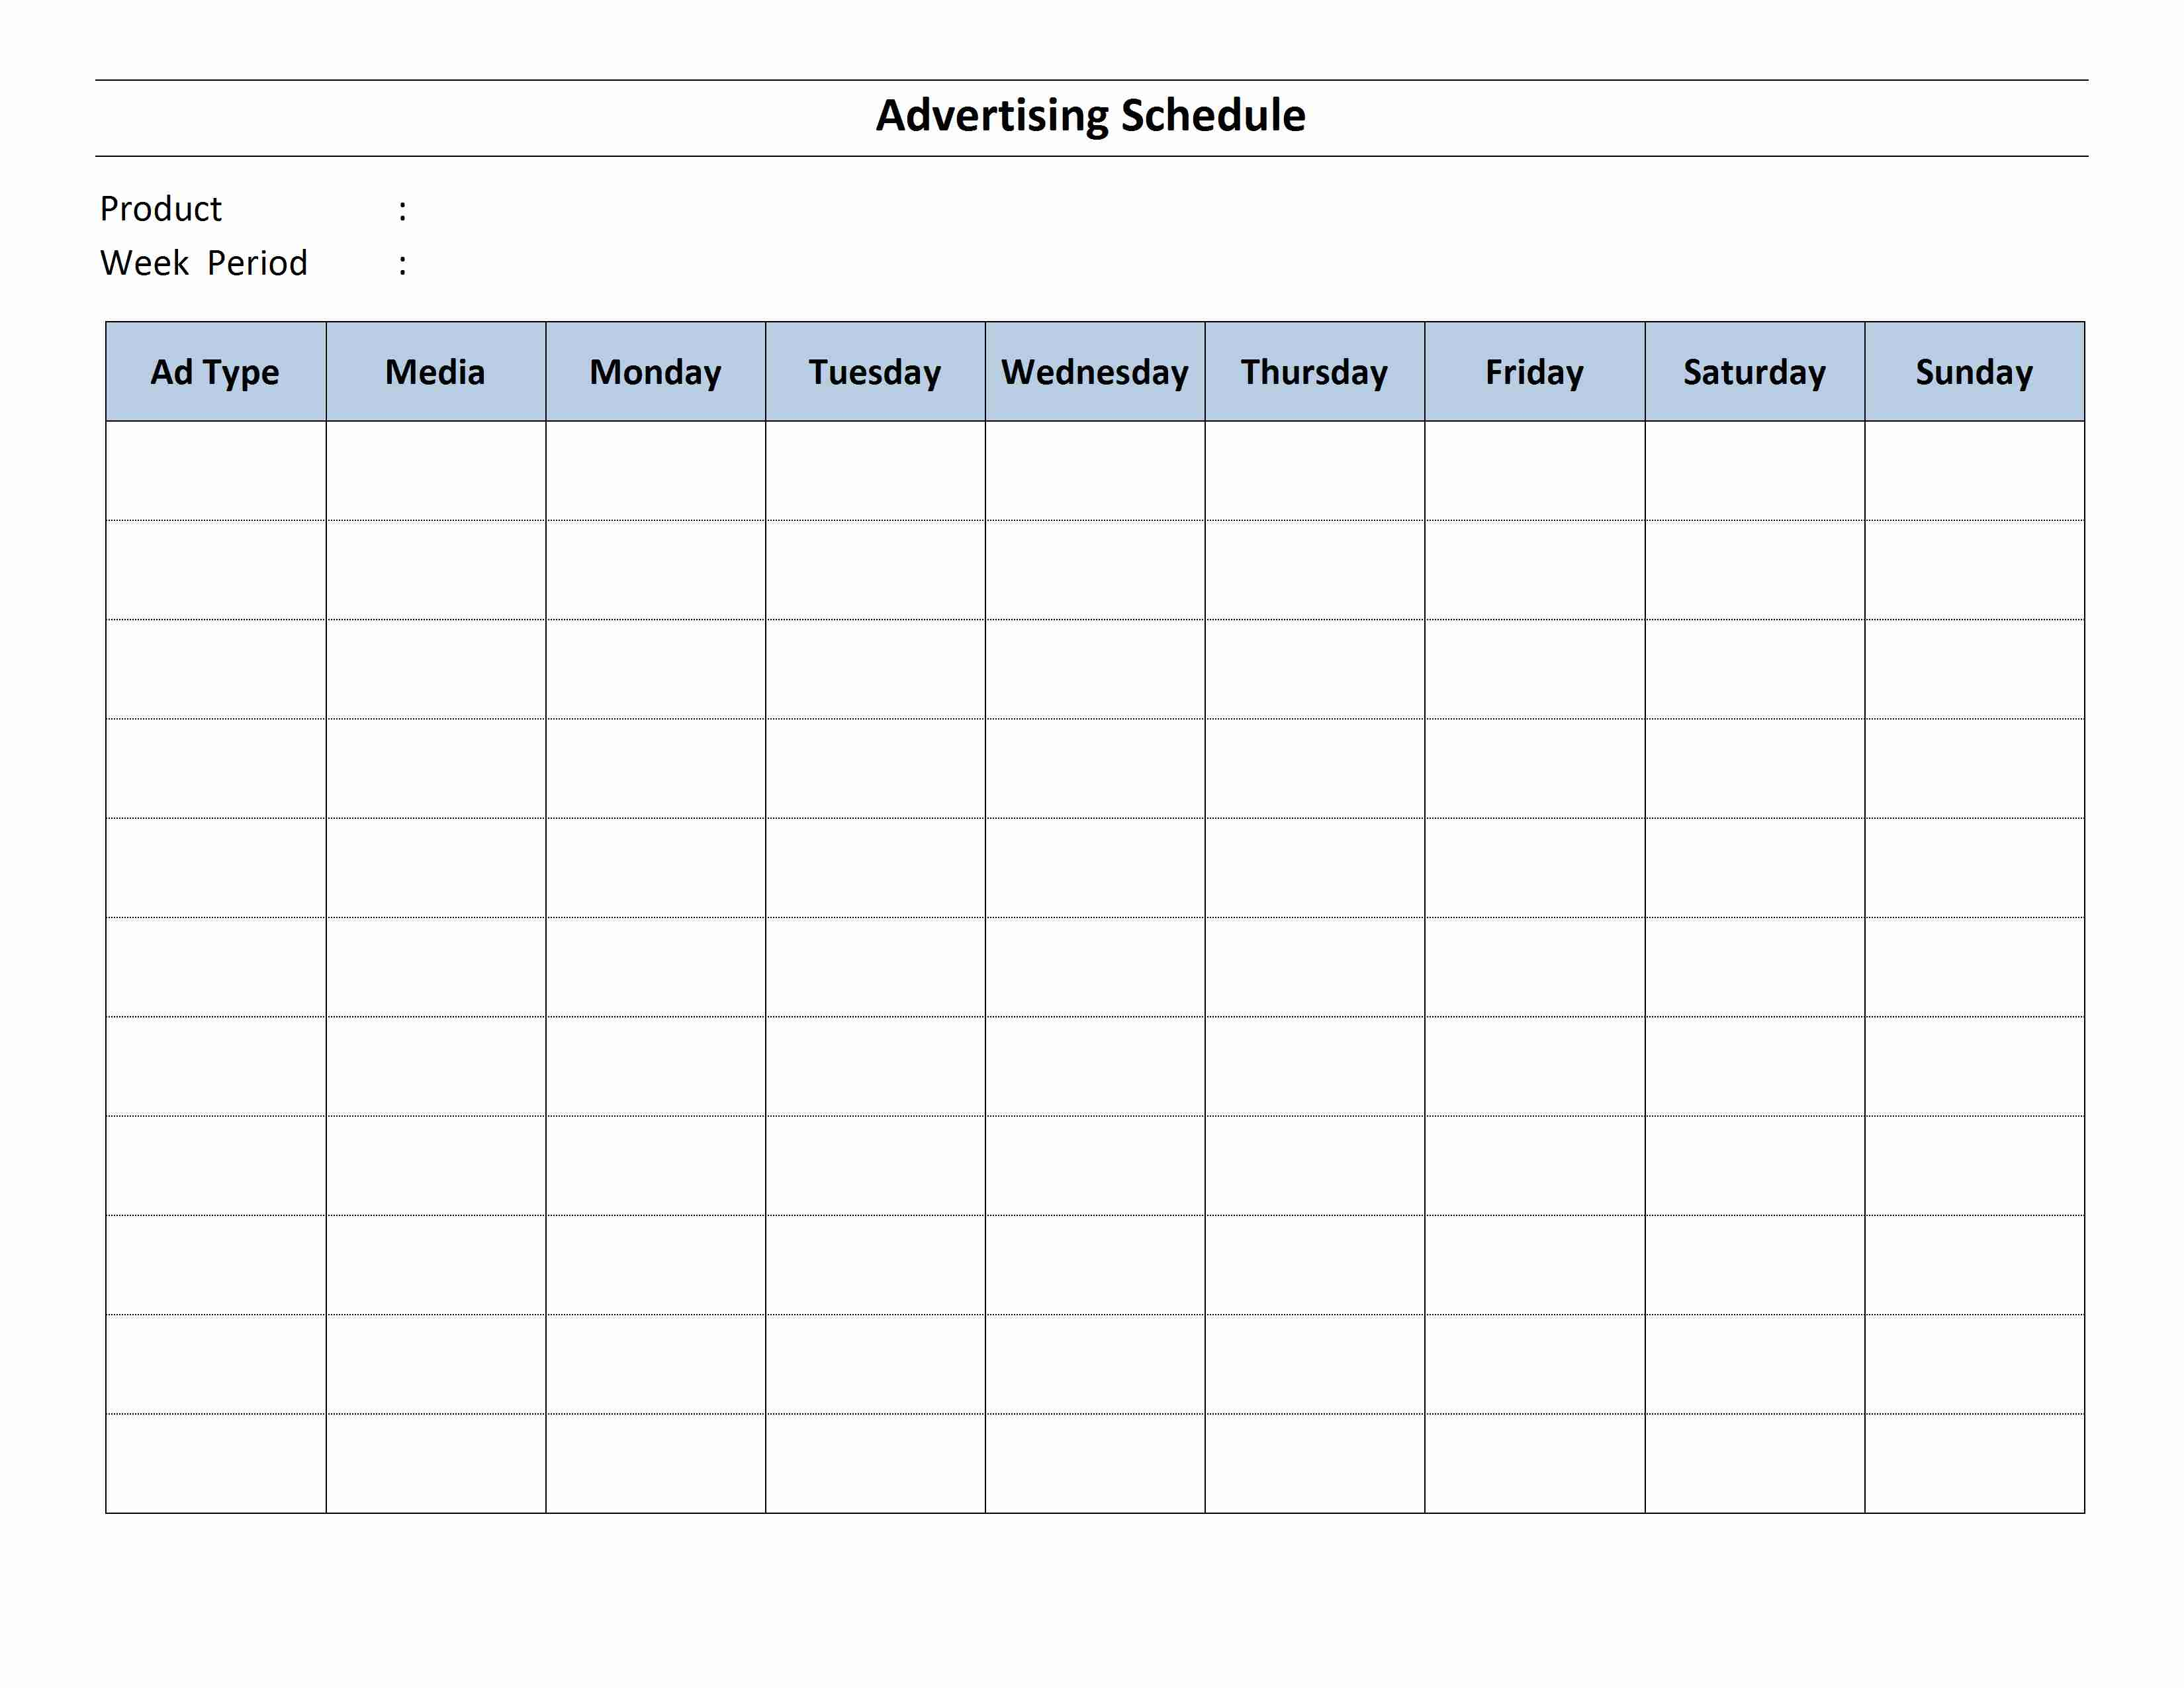 Advertising schedule for Radio schedule template